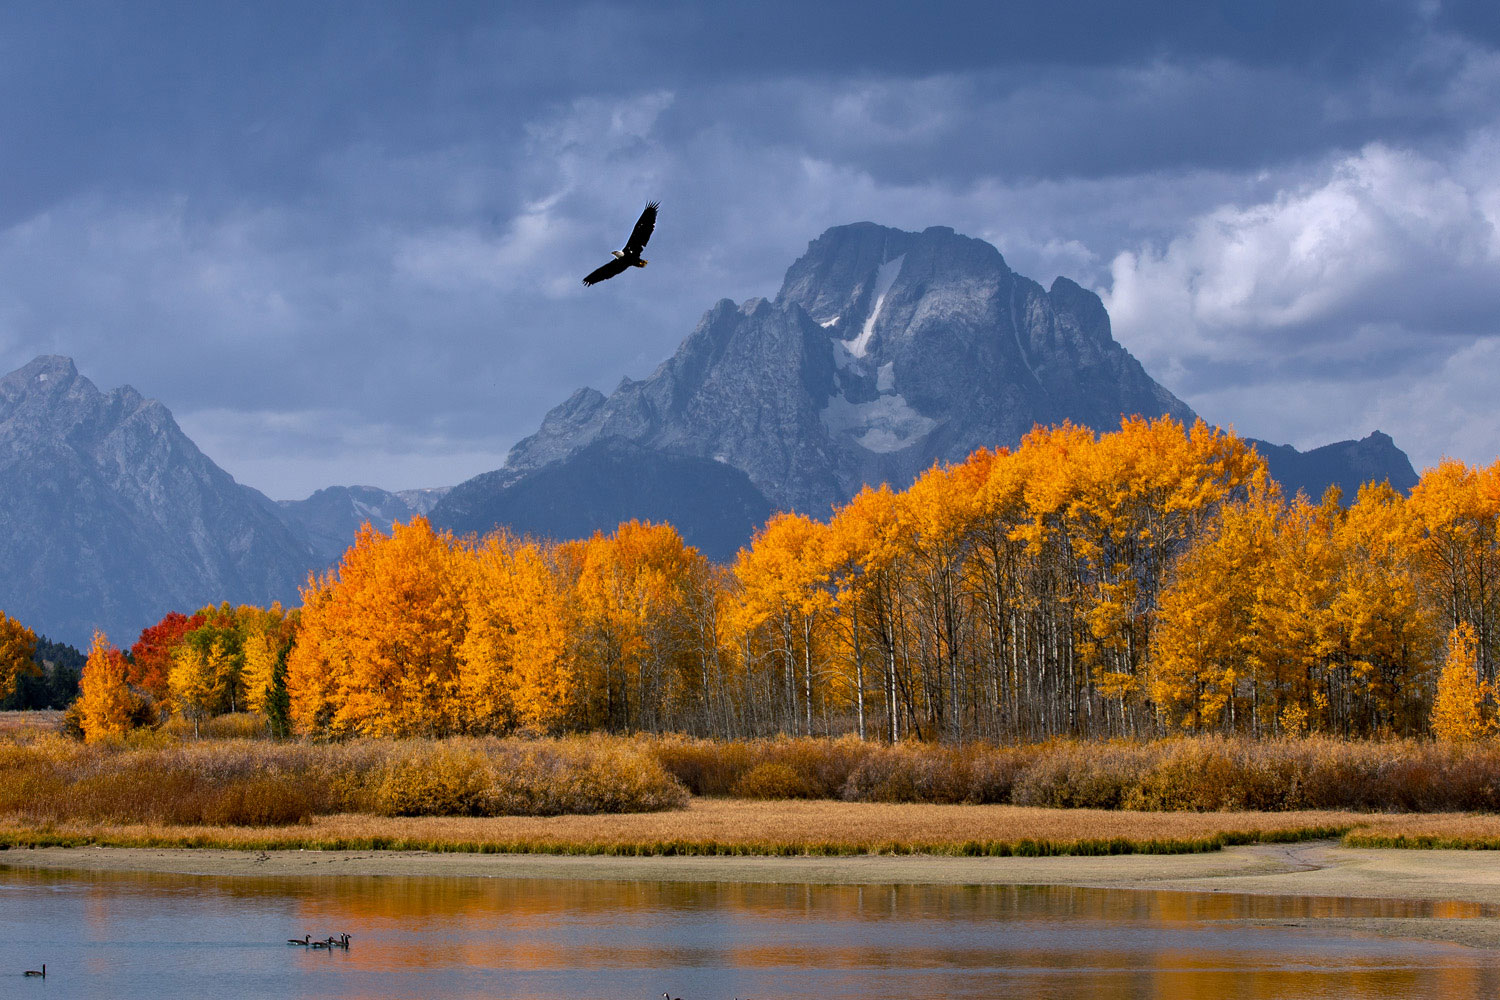 A bald eagle rises in the autumn sky in search of fish in the rich waters of the Snake River as it slows around Oxbow Bend.